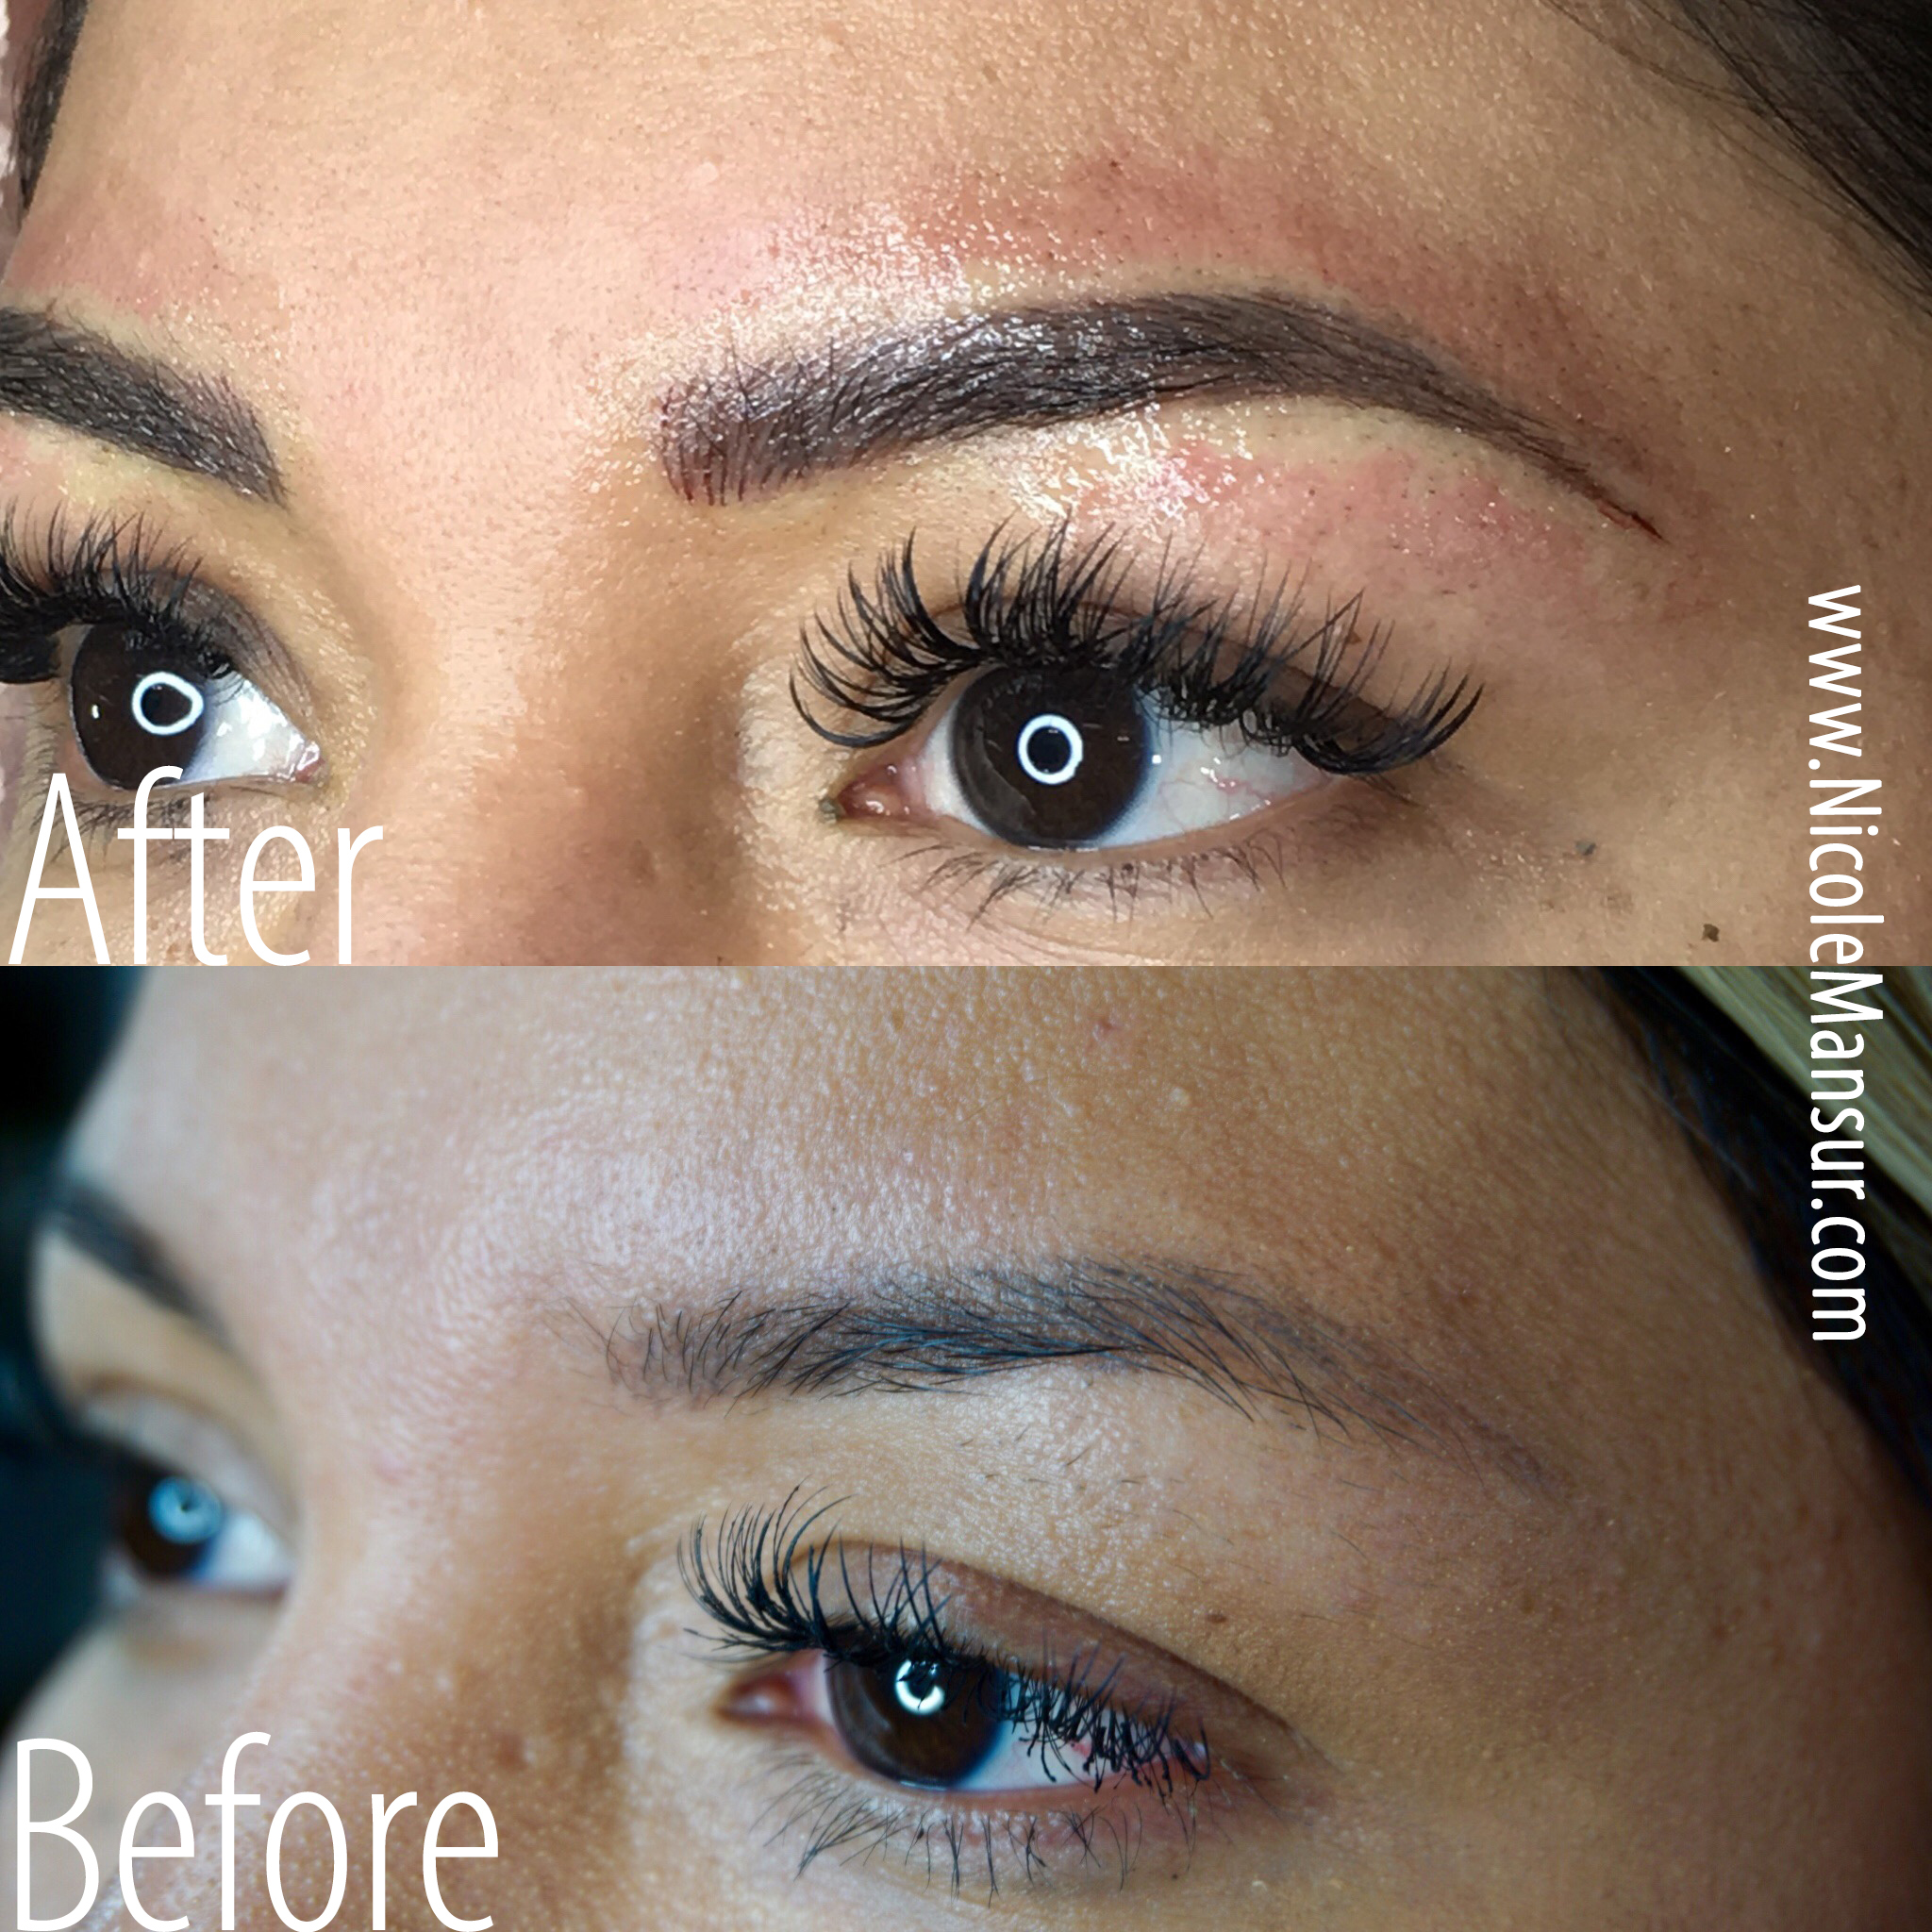 Microblading before and after Photos Eyebrows Micro Blading before and after Photos